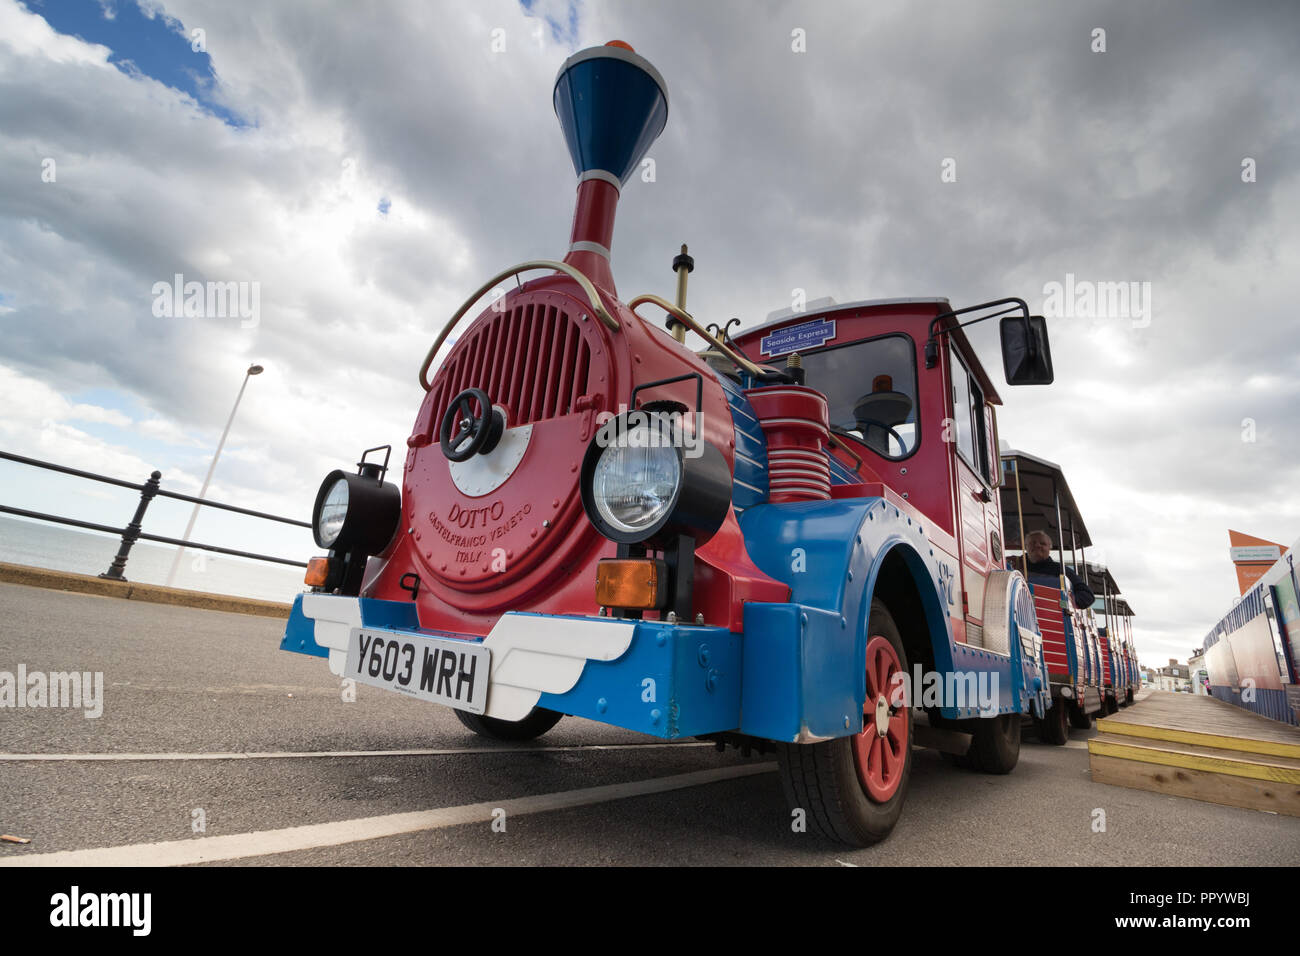 The Land Train in Bridlington on the Yorkshire coast - Stock Image